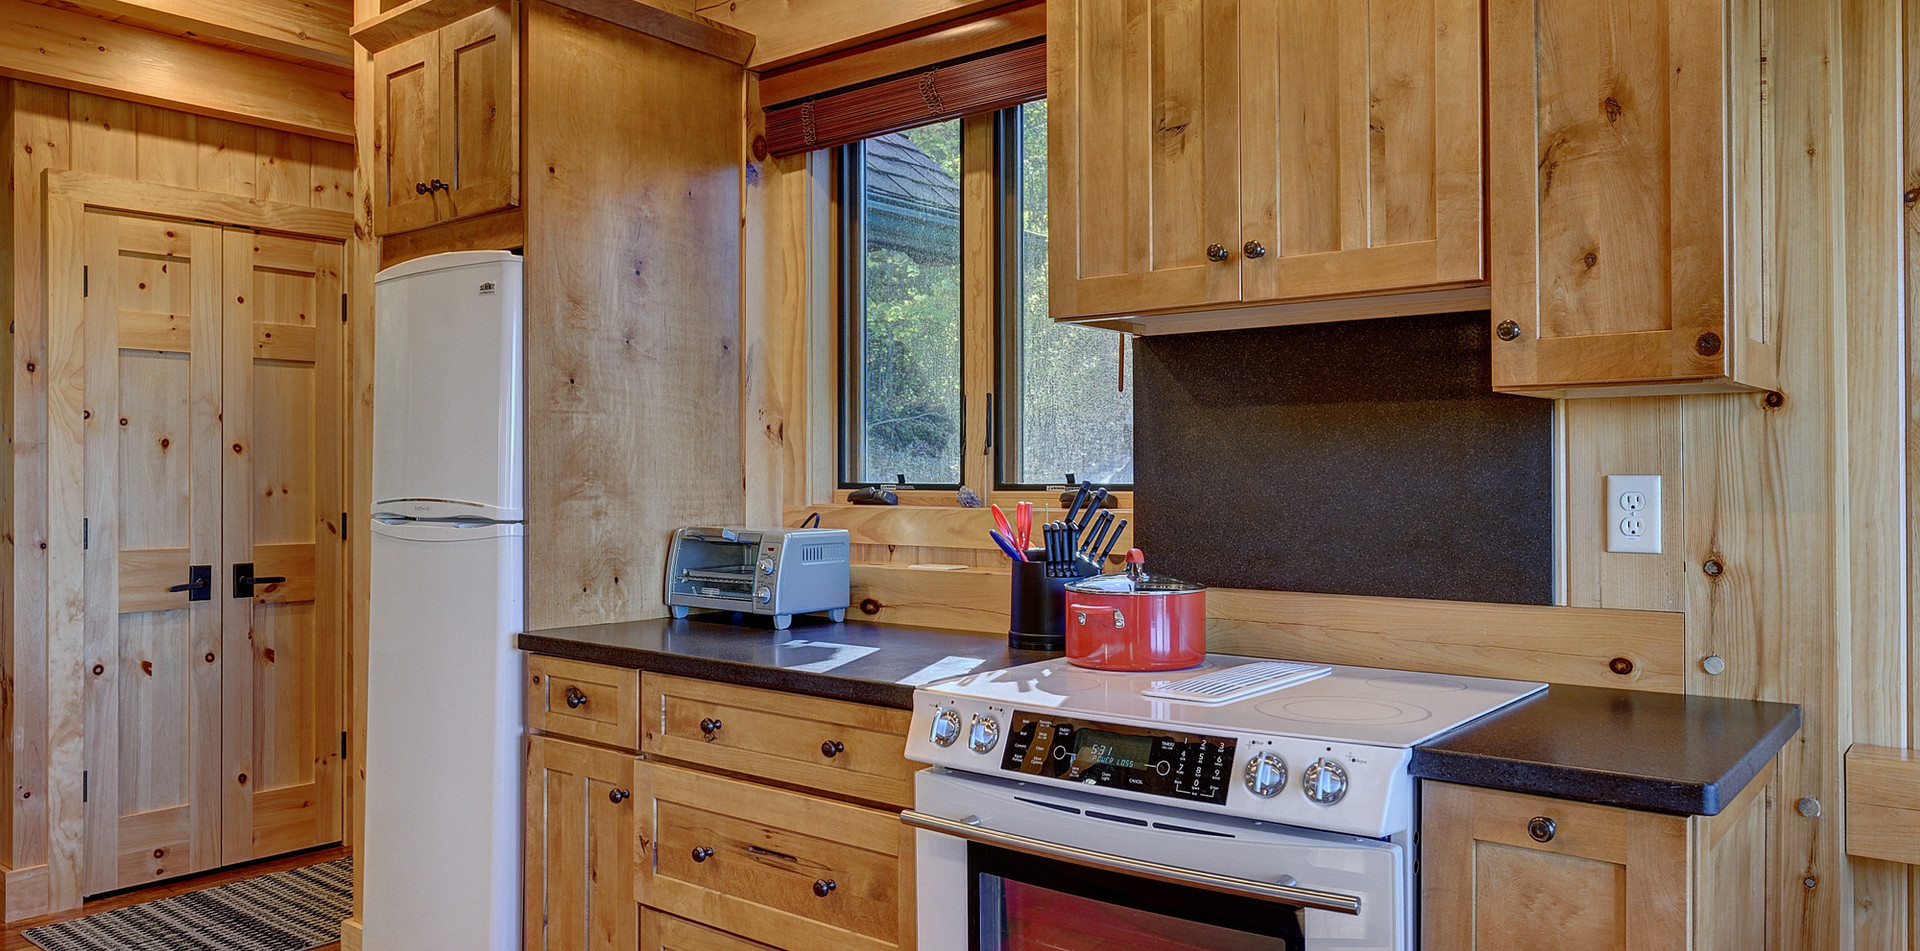 The fully equipped kitchen has everything you'll need to prepare a gourmet meal.